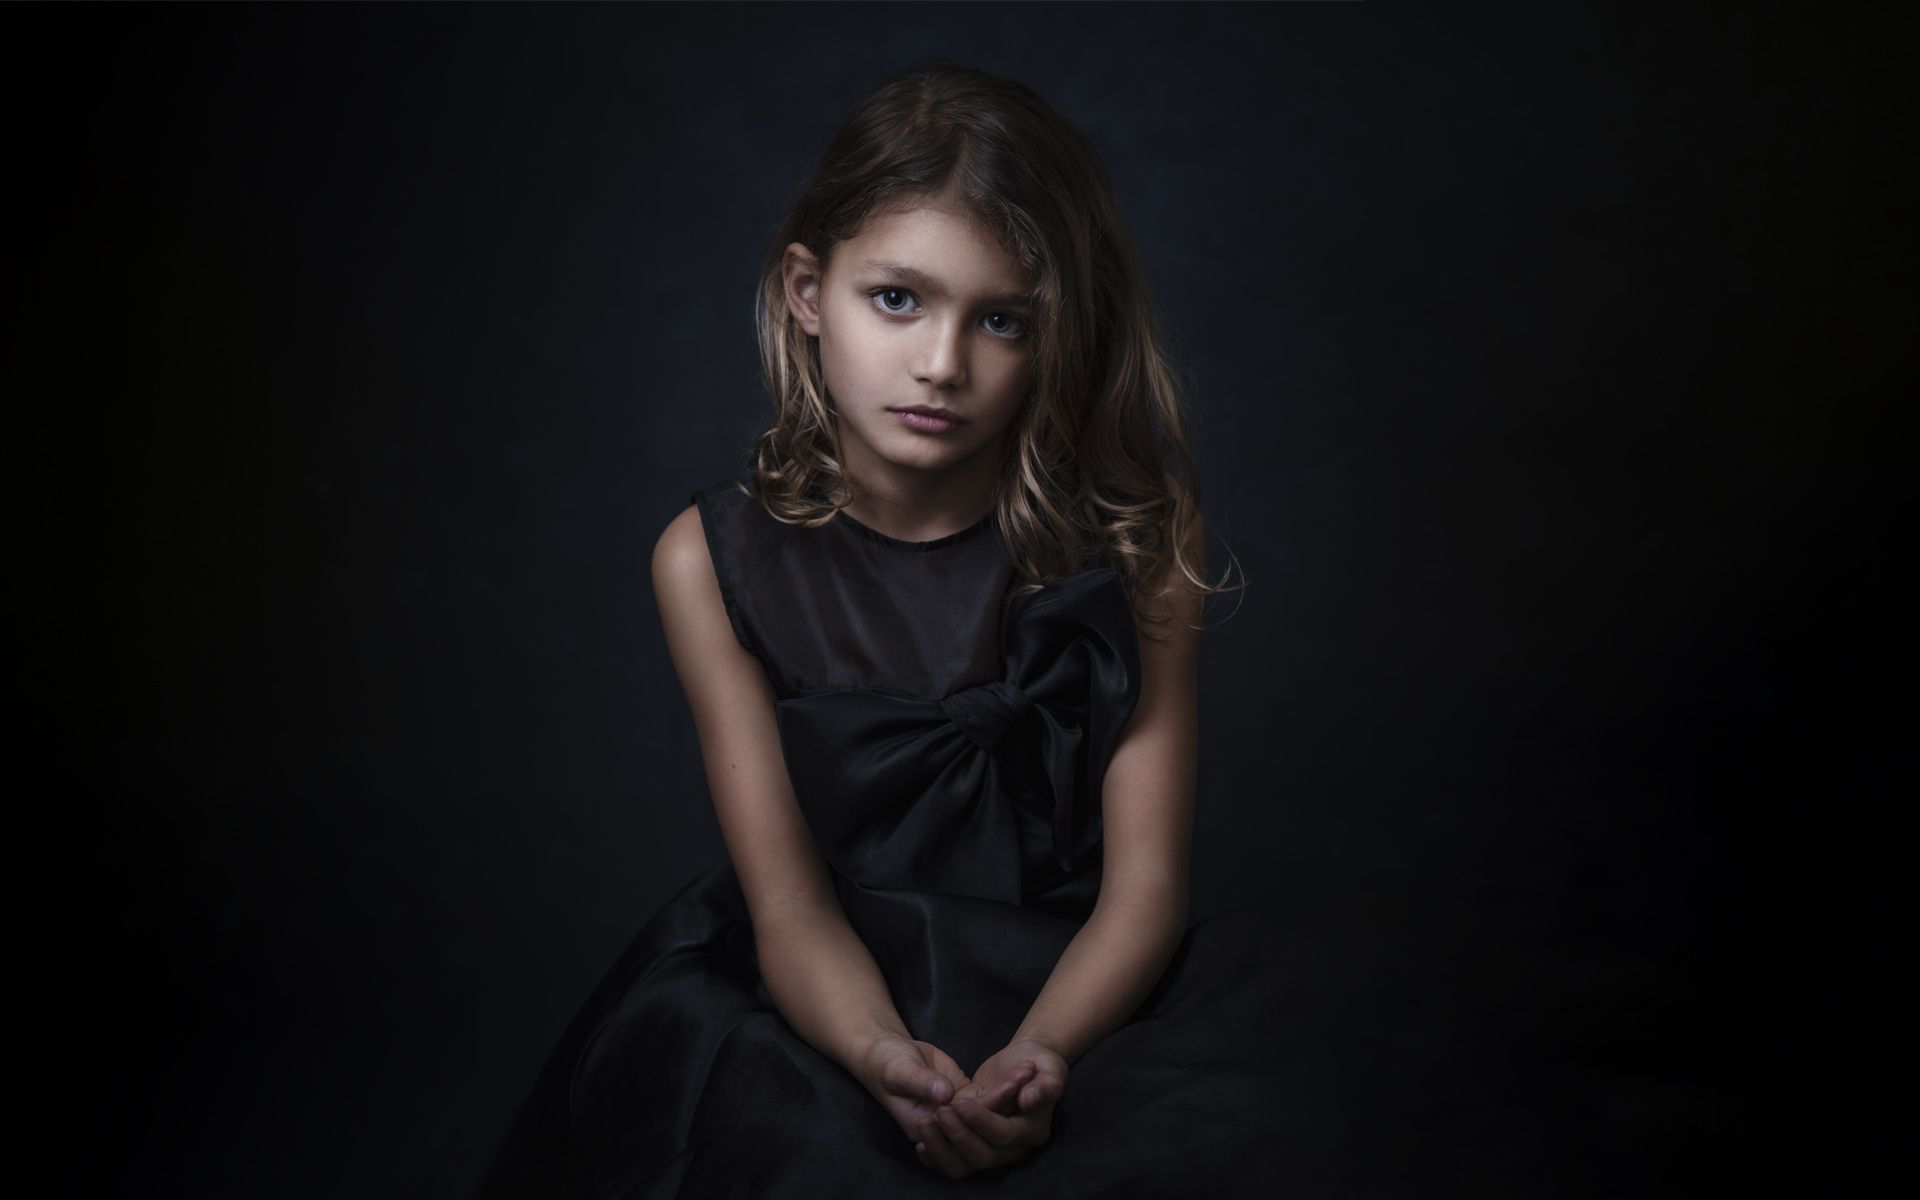 Pin On My Portrait Photography